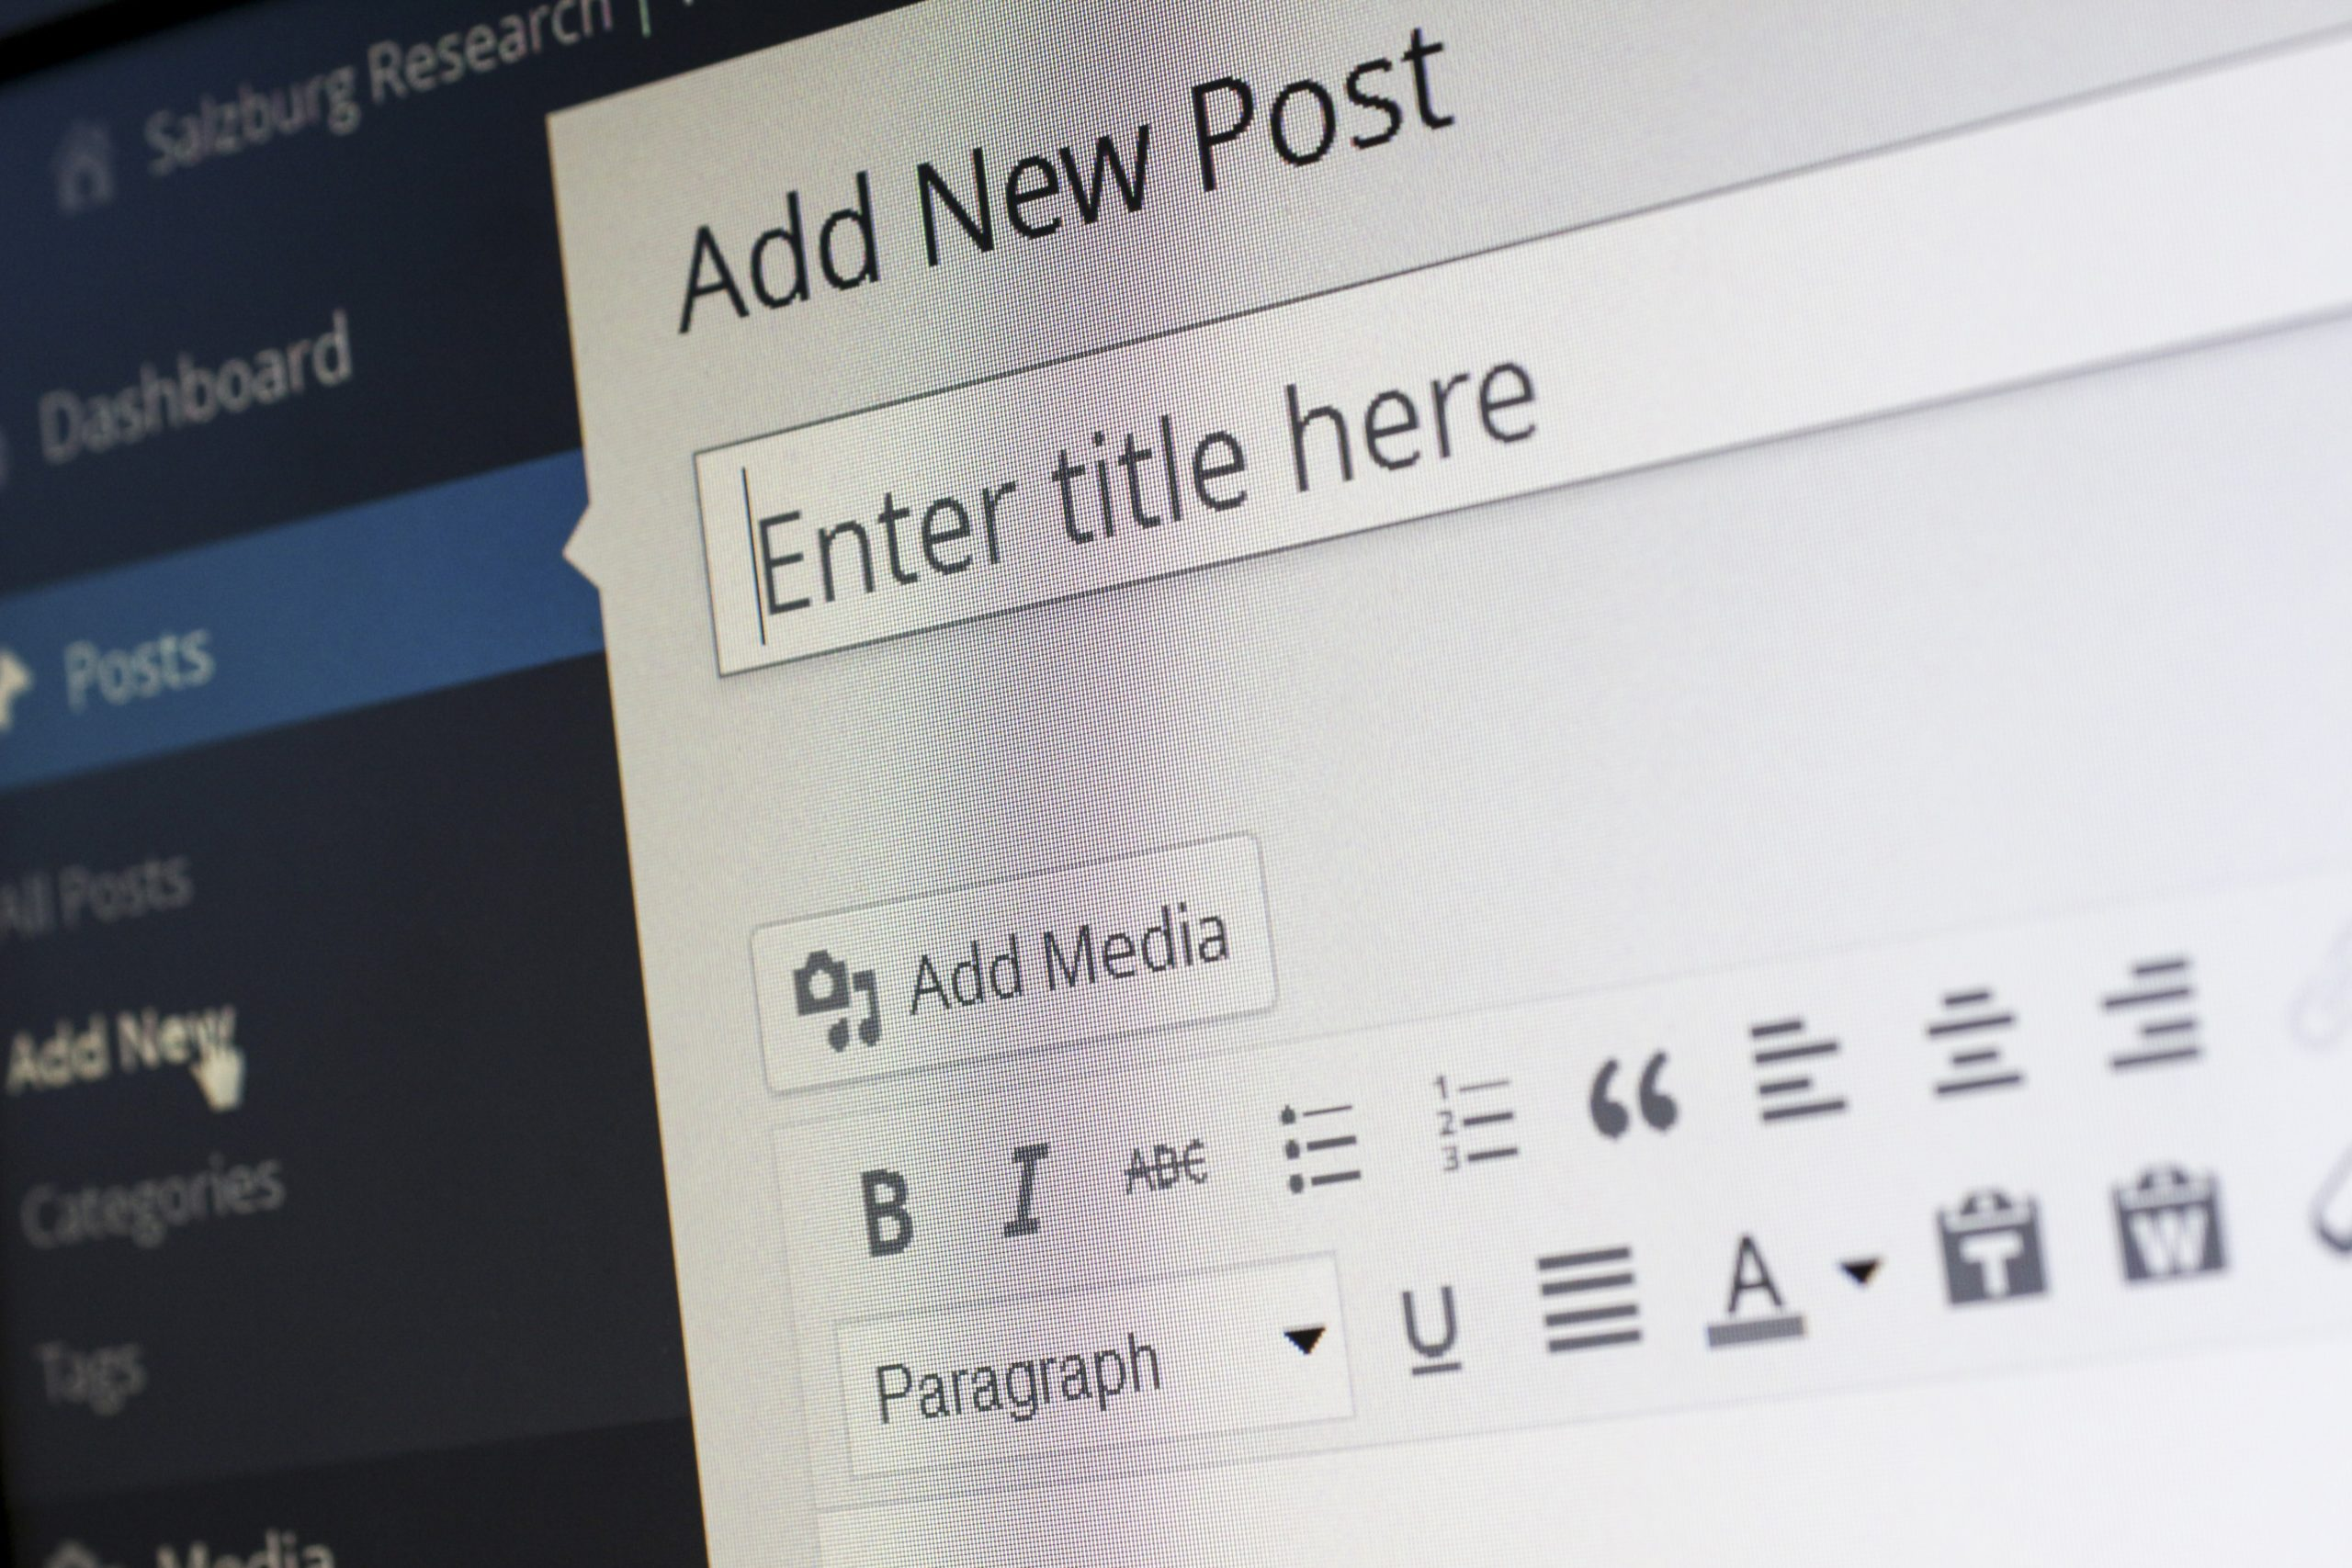 WordPress - add a new post function